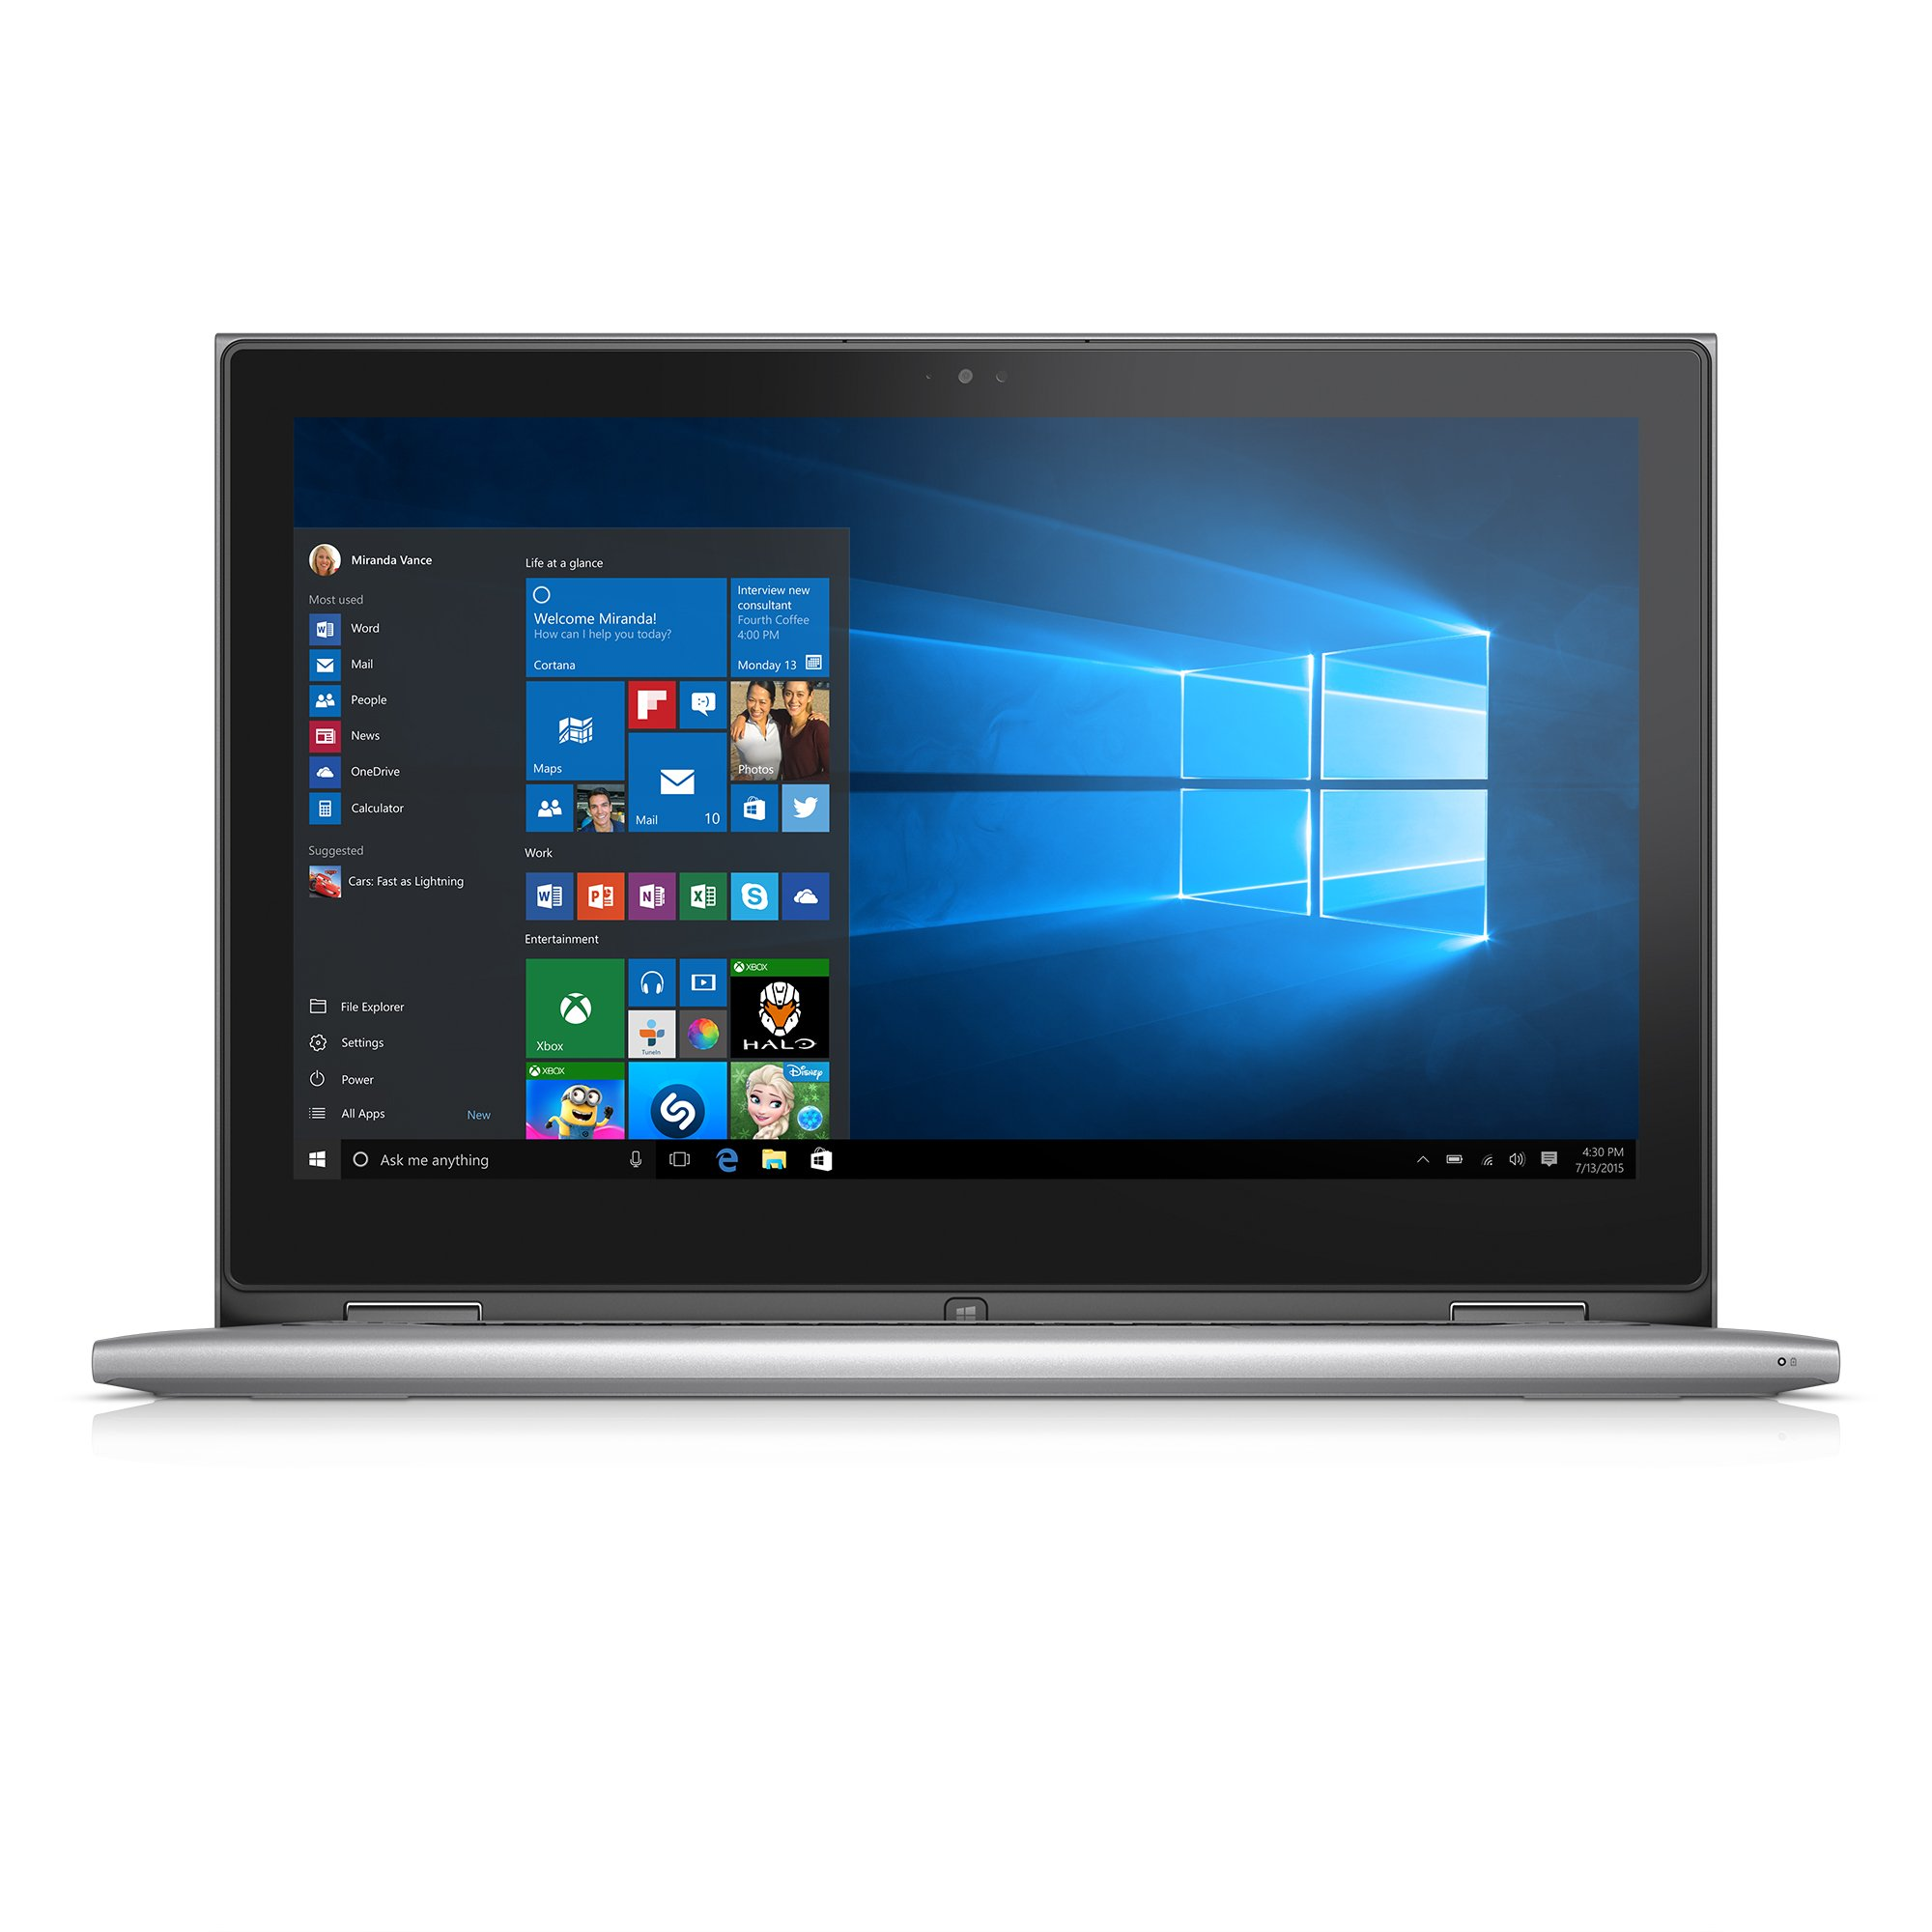 Dell Inspiron i7359-8404SLV 13.3 Inch 2-in-1 Touchscreen Laptop (6th Generation Intel Core i7, 8 GB RAM, 256 GB SSD) by Dell